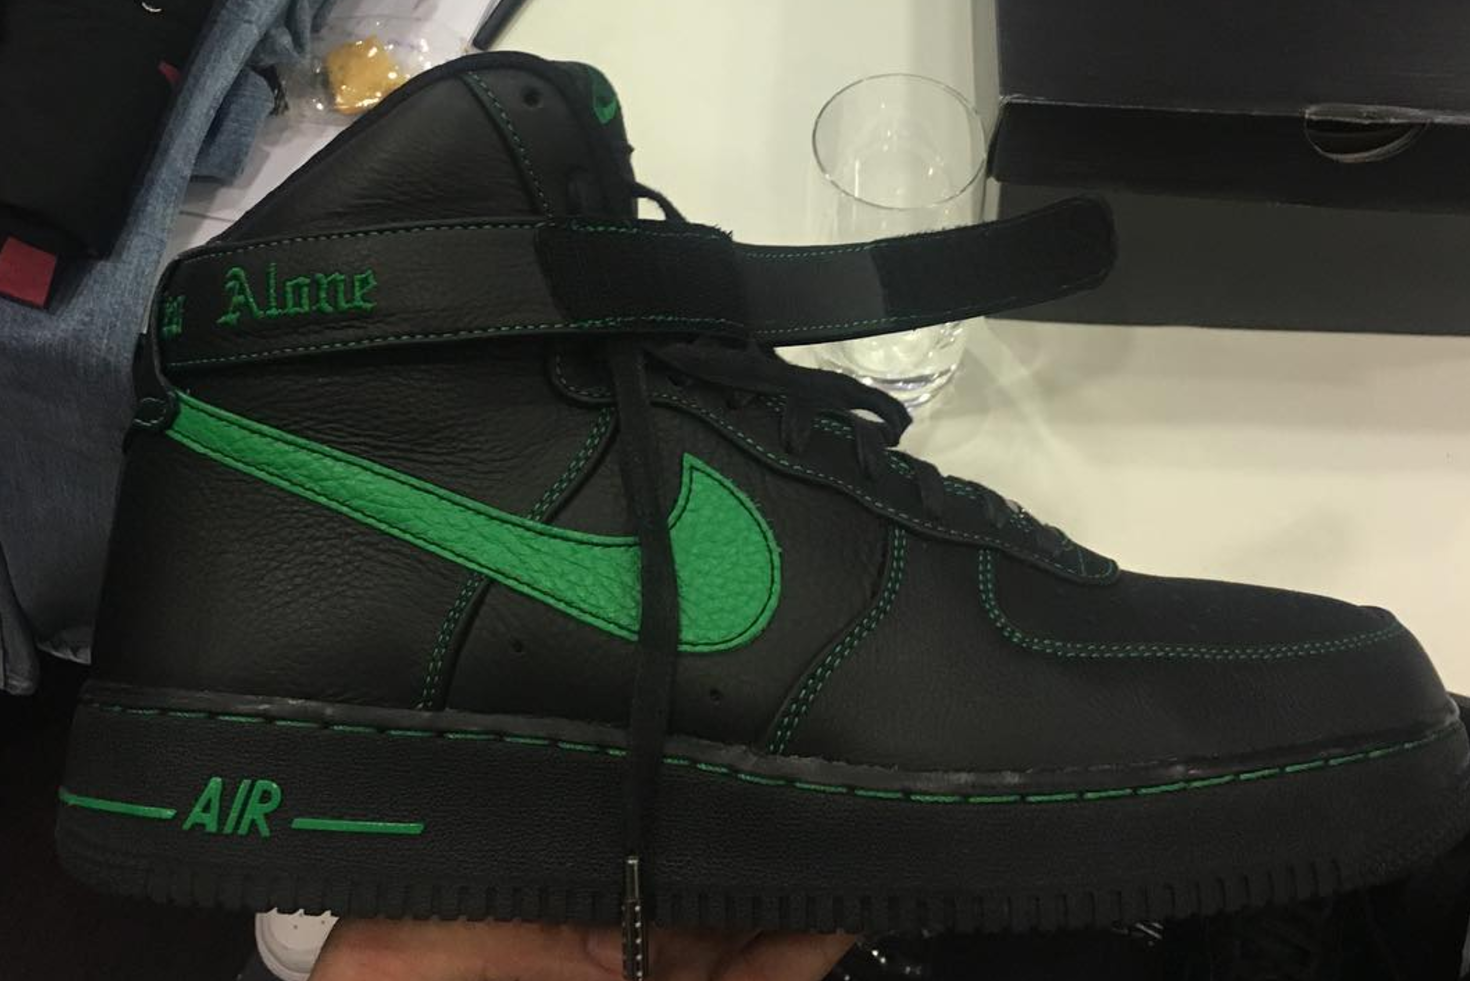 reputable site 4c0f9 c6fc3 Vlone x Nike Sneaker Collection - First Look - Sneaker Myth